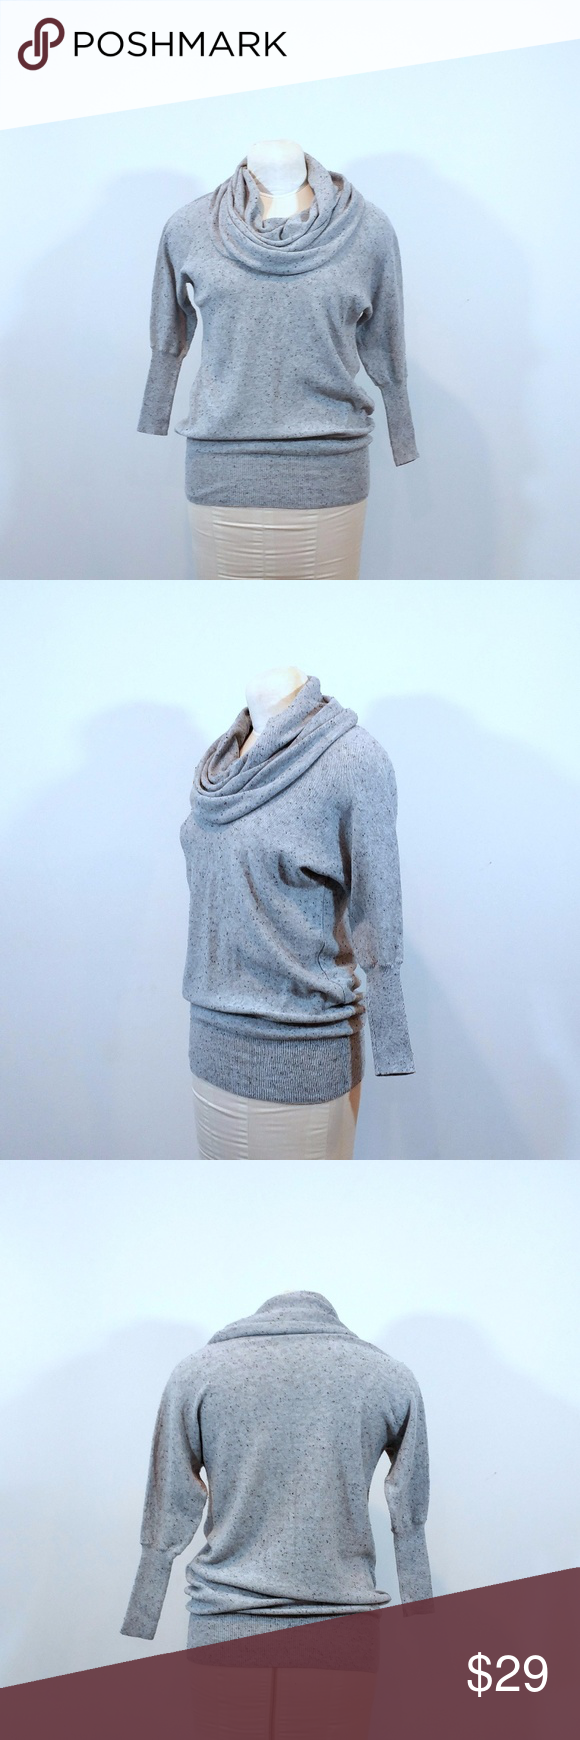 """Cynthia Rowley Grey Cowl Neck Sweater Up for sale in great preowned condition Cynthia Rowley Grey Sweater. Size indicator is missing, please see measurements below.  Check out my closet, bundle and give me your offer!  Measurements: Top to Bottom: 25"""" Bust Area: 15.5""""  All Measurements are approximate and taken flat in the front only. Cynthia Rowley Sweaters Cowl & Turtlenecks"""